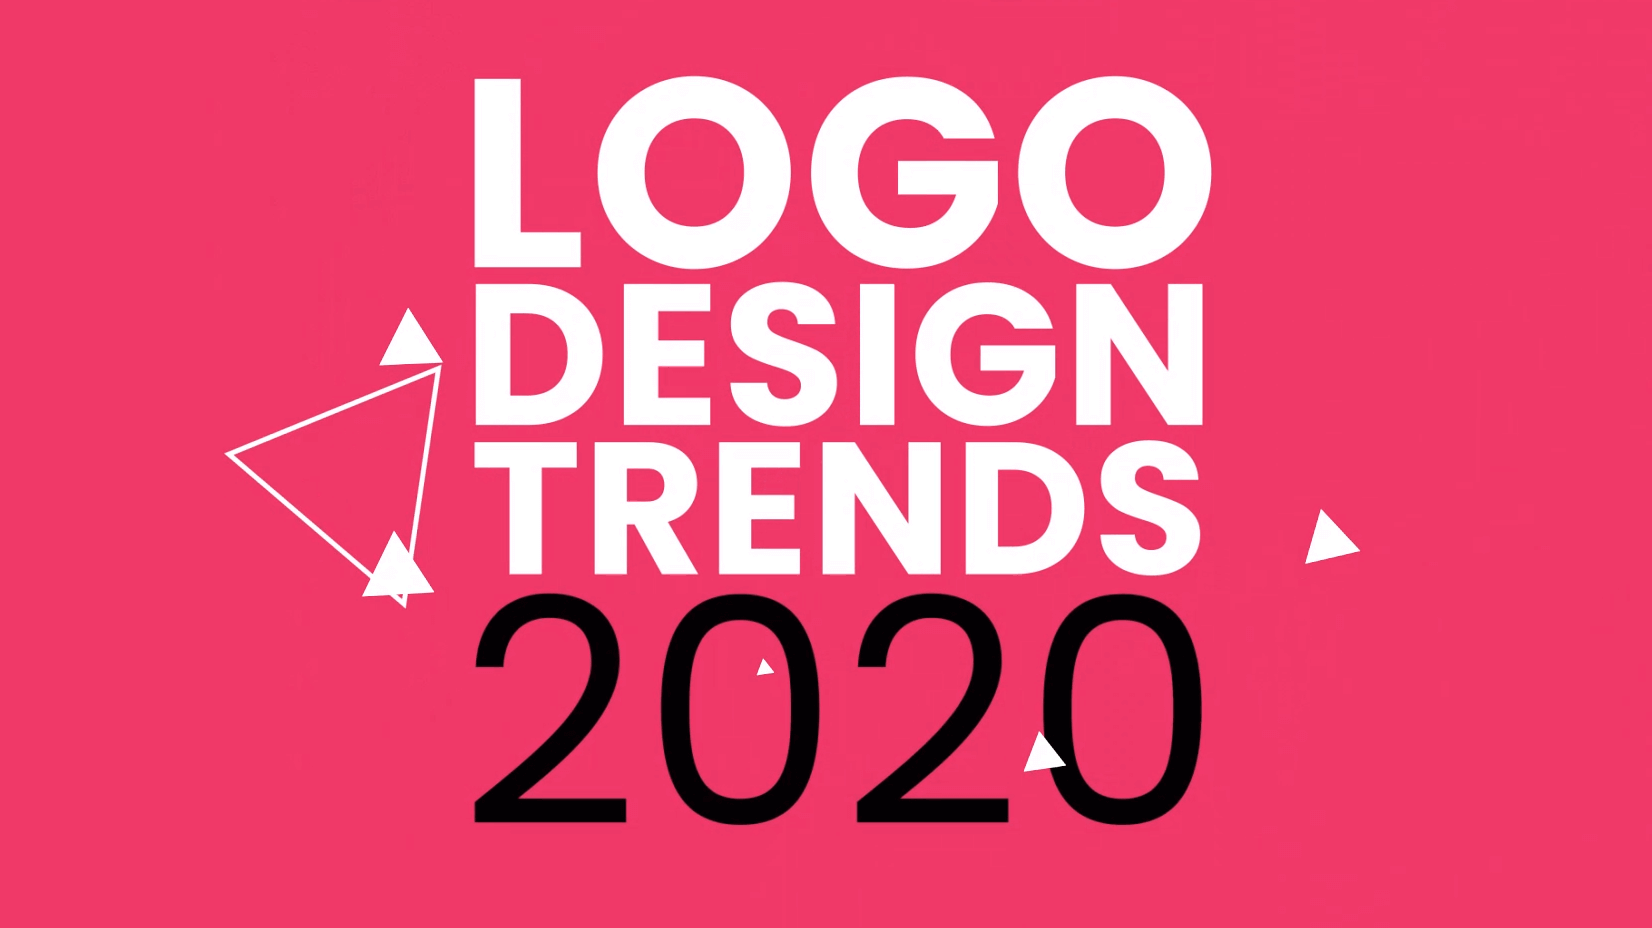 2020 Graphic Design Trends.Logo Design Trends 2020 A Blast Of Colors And Shapes